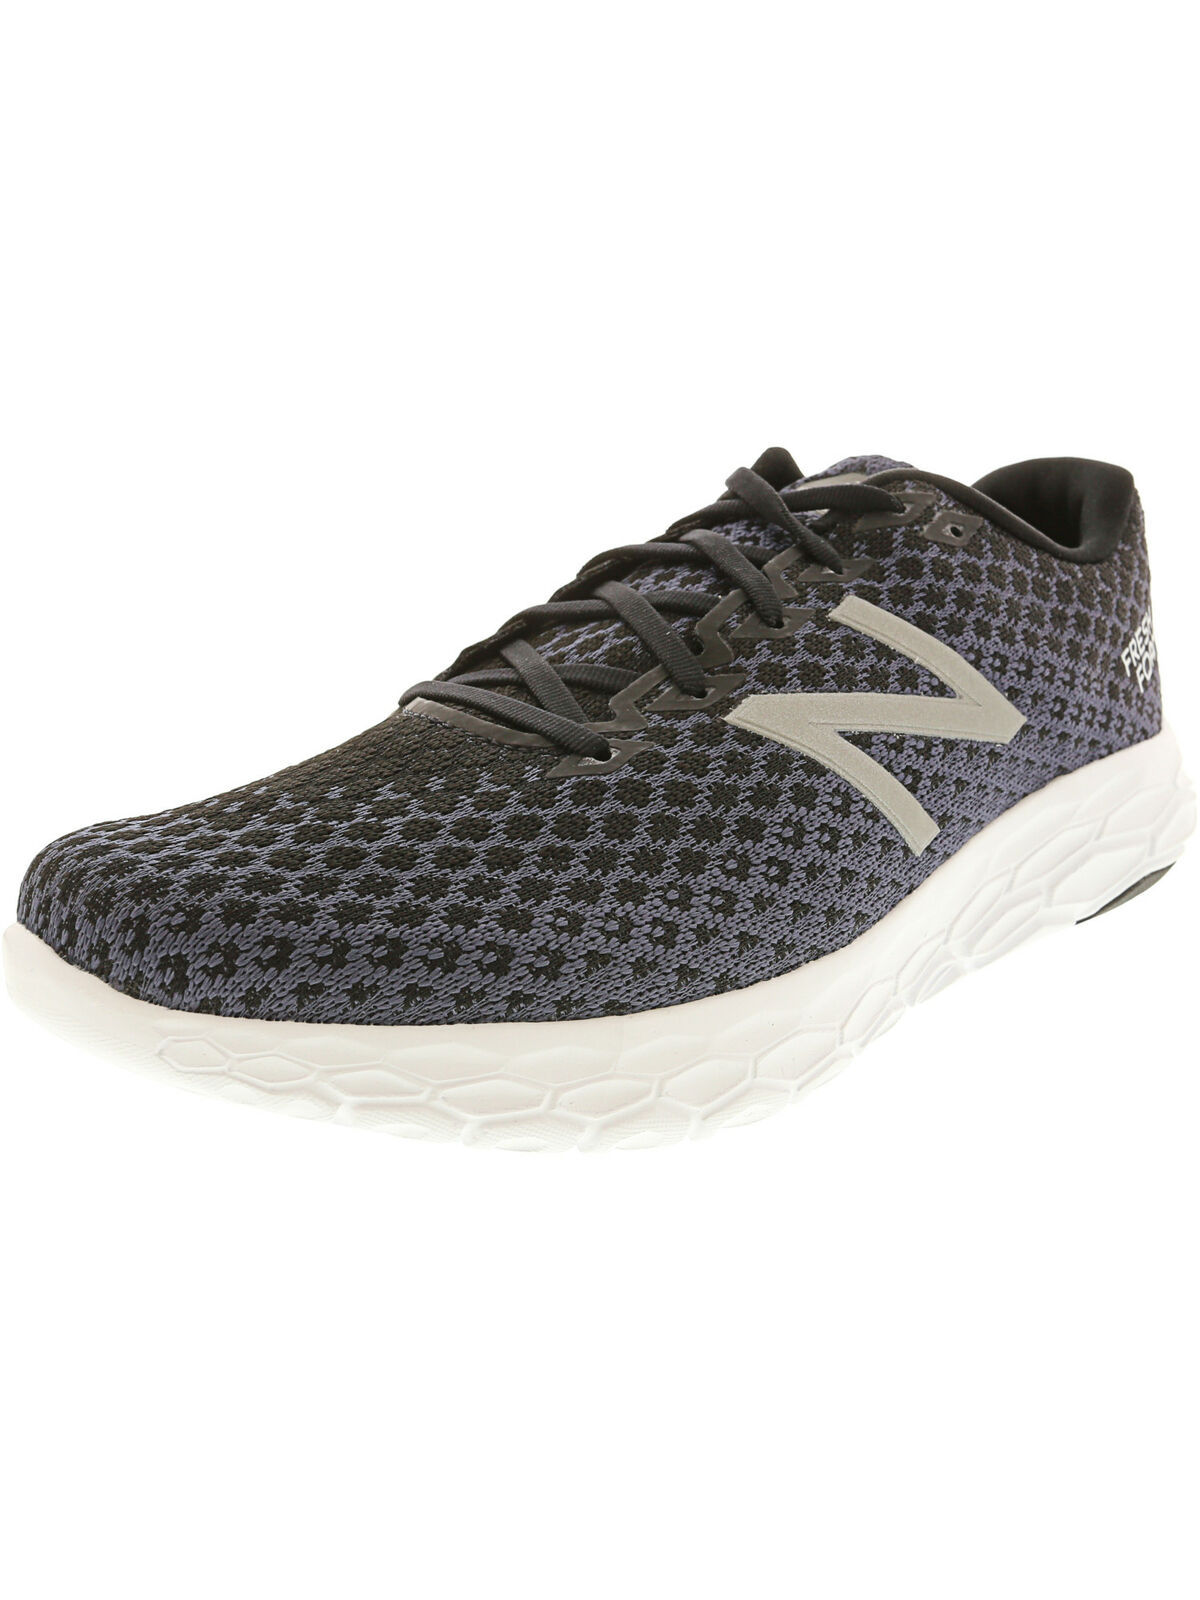 New Balance Homme mbecn Ankle-high Mesh Chaussure De Course